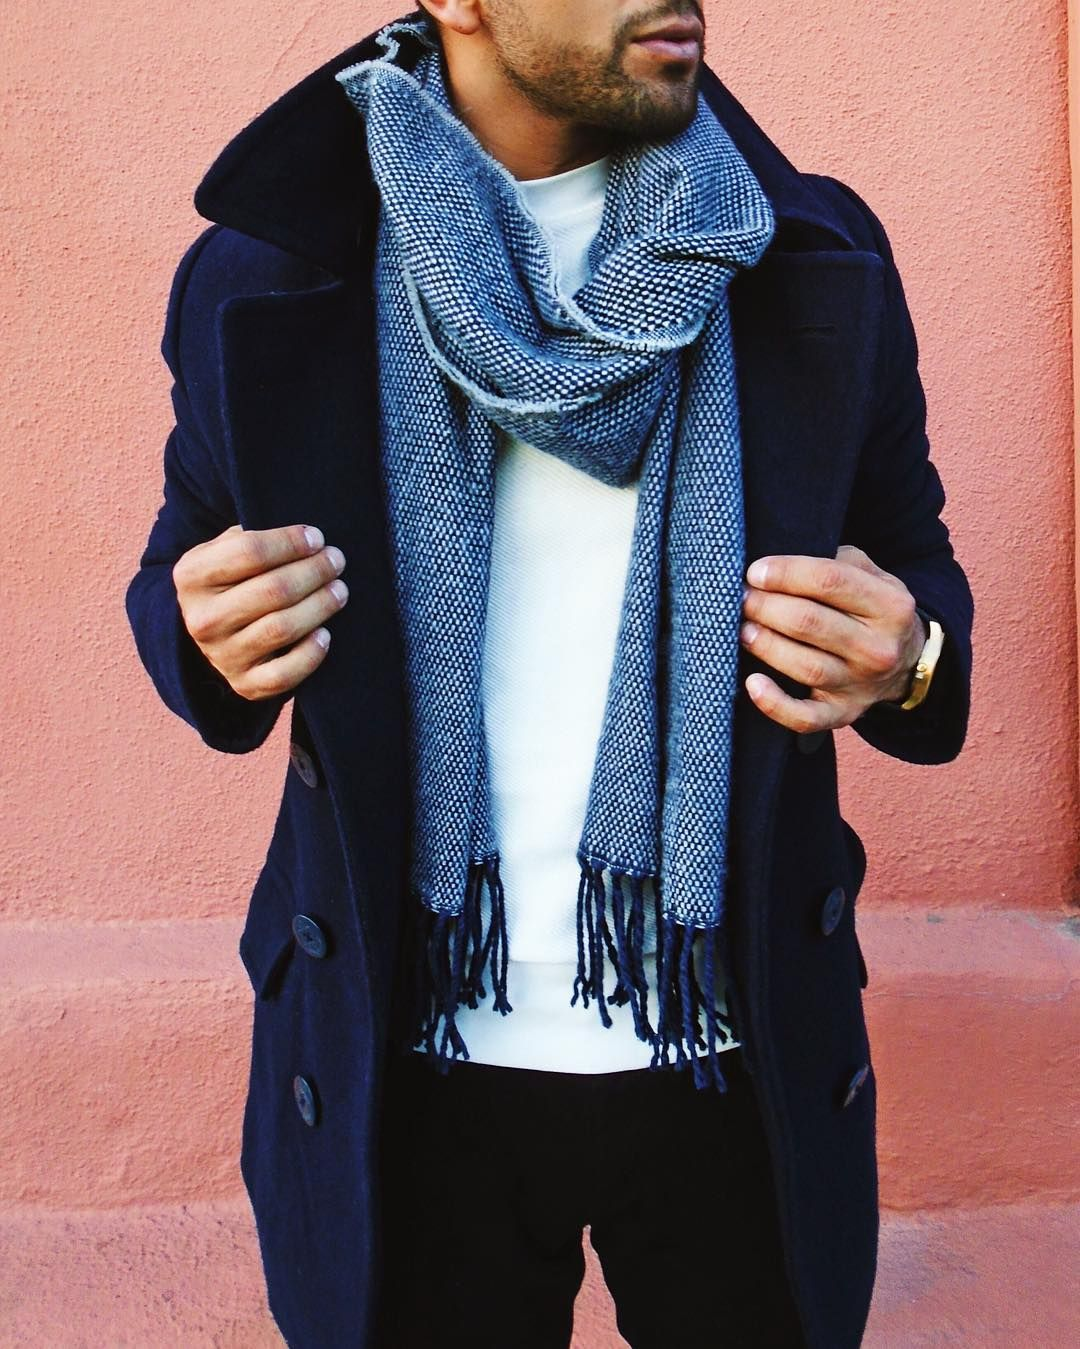 23abebc743841 blues // menswear, mens style, fashion, peacoat, navy, blue, scarf,  t-shirt, winter, holiday, #sponsored